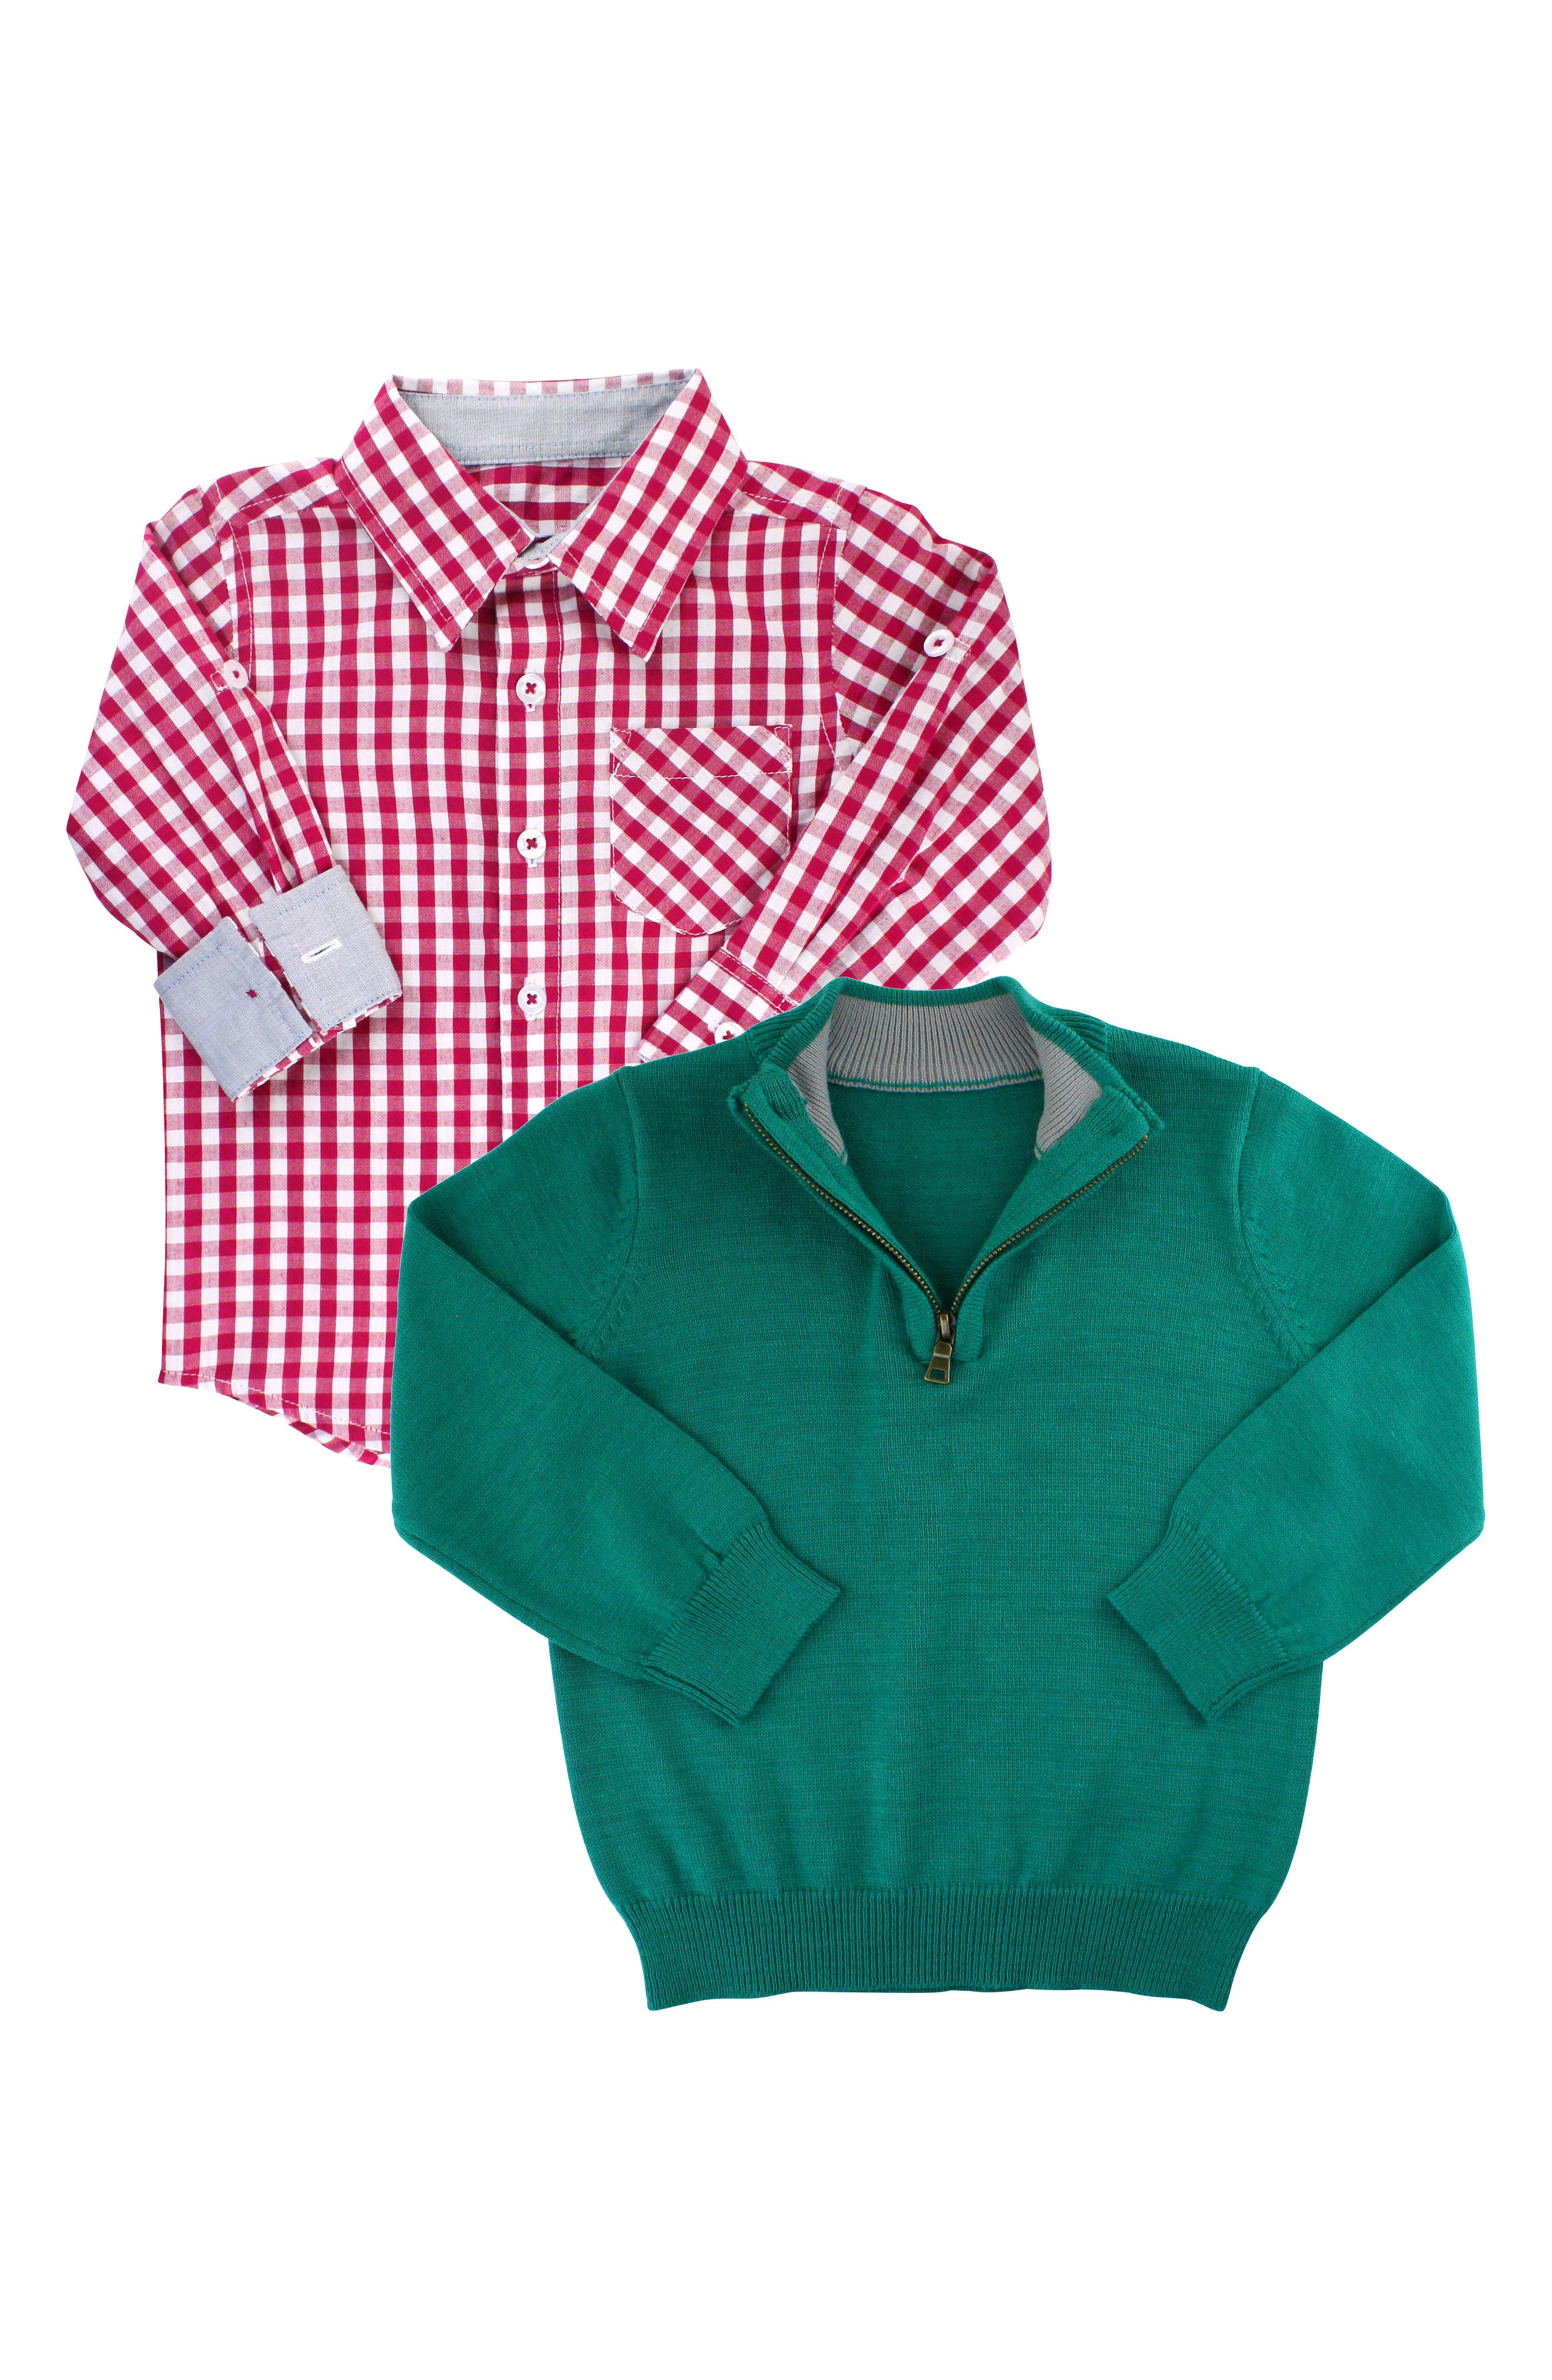 RUGGEDBUTTS Gingham Shirt & Pullover Sweater Set, Main, color, 300